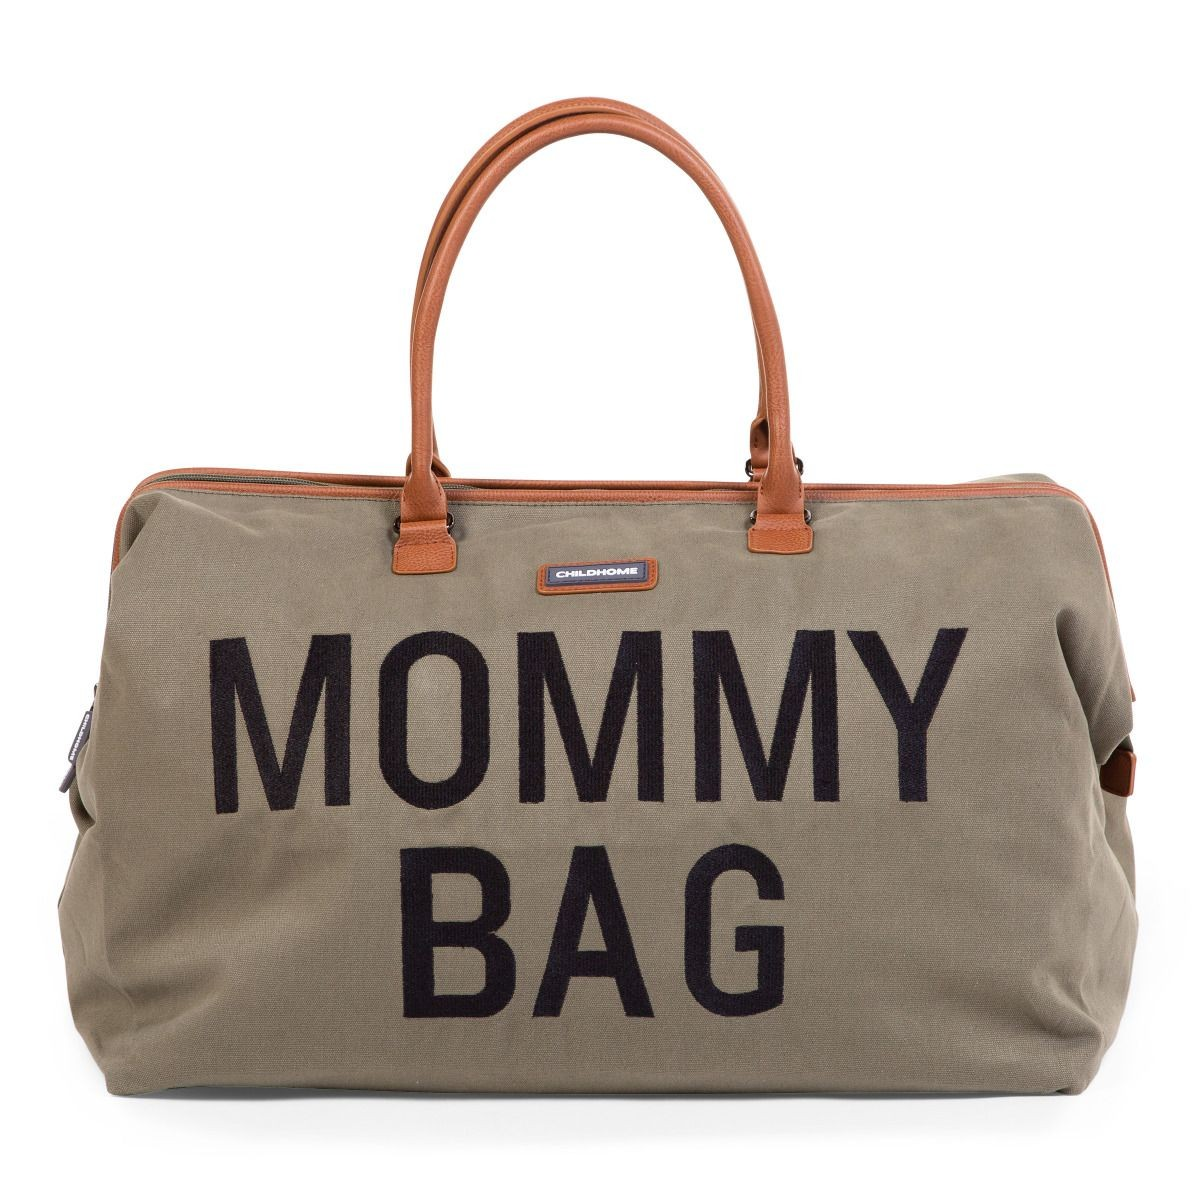 Mommy Bag Toile